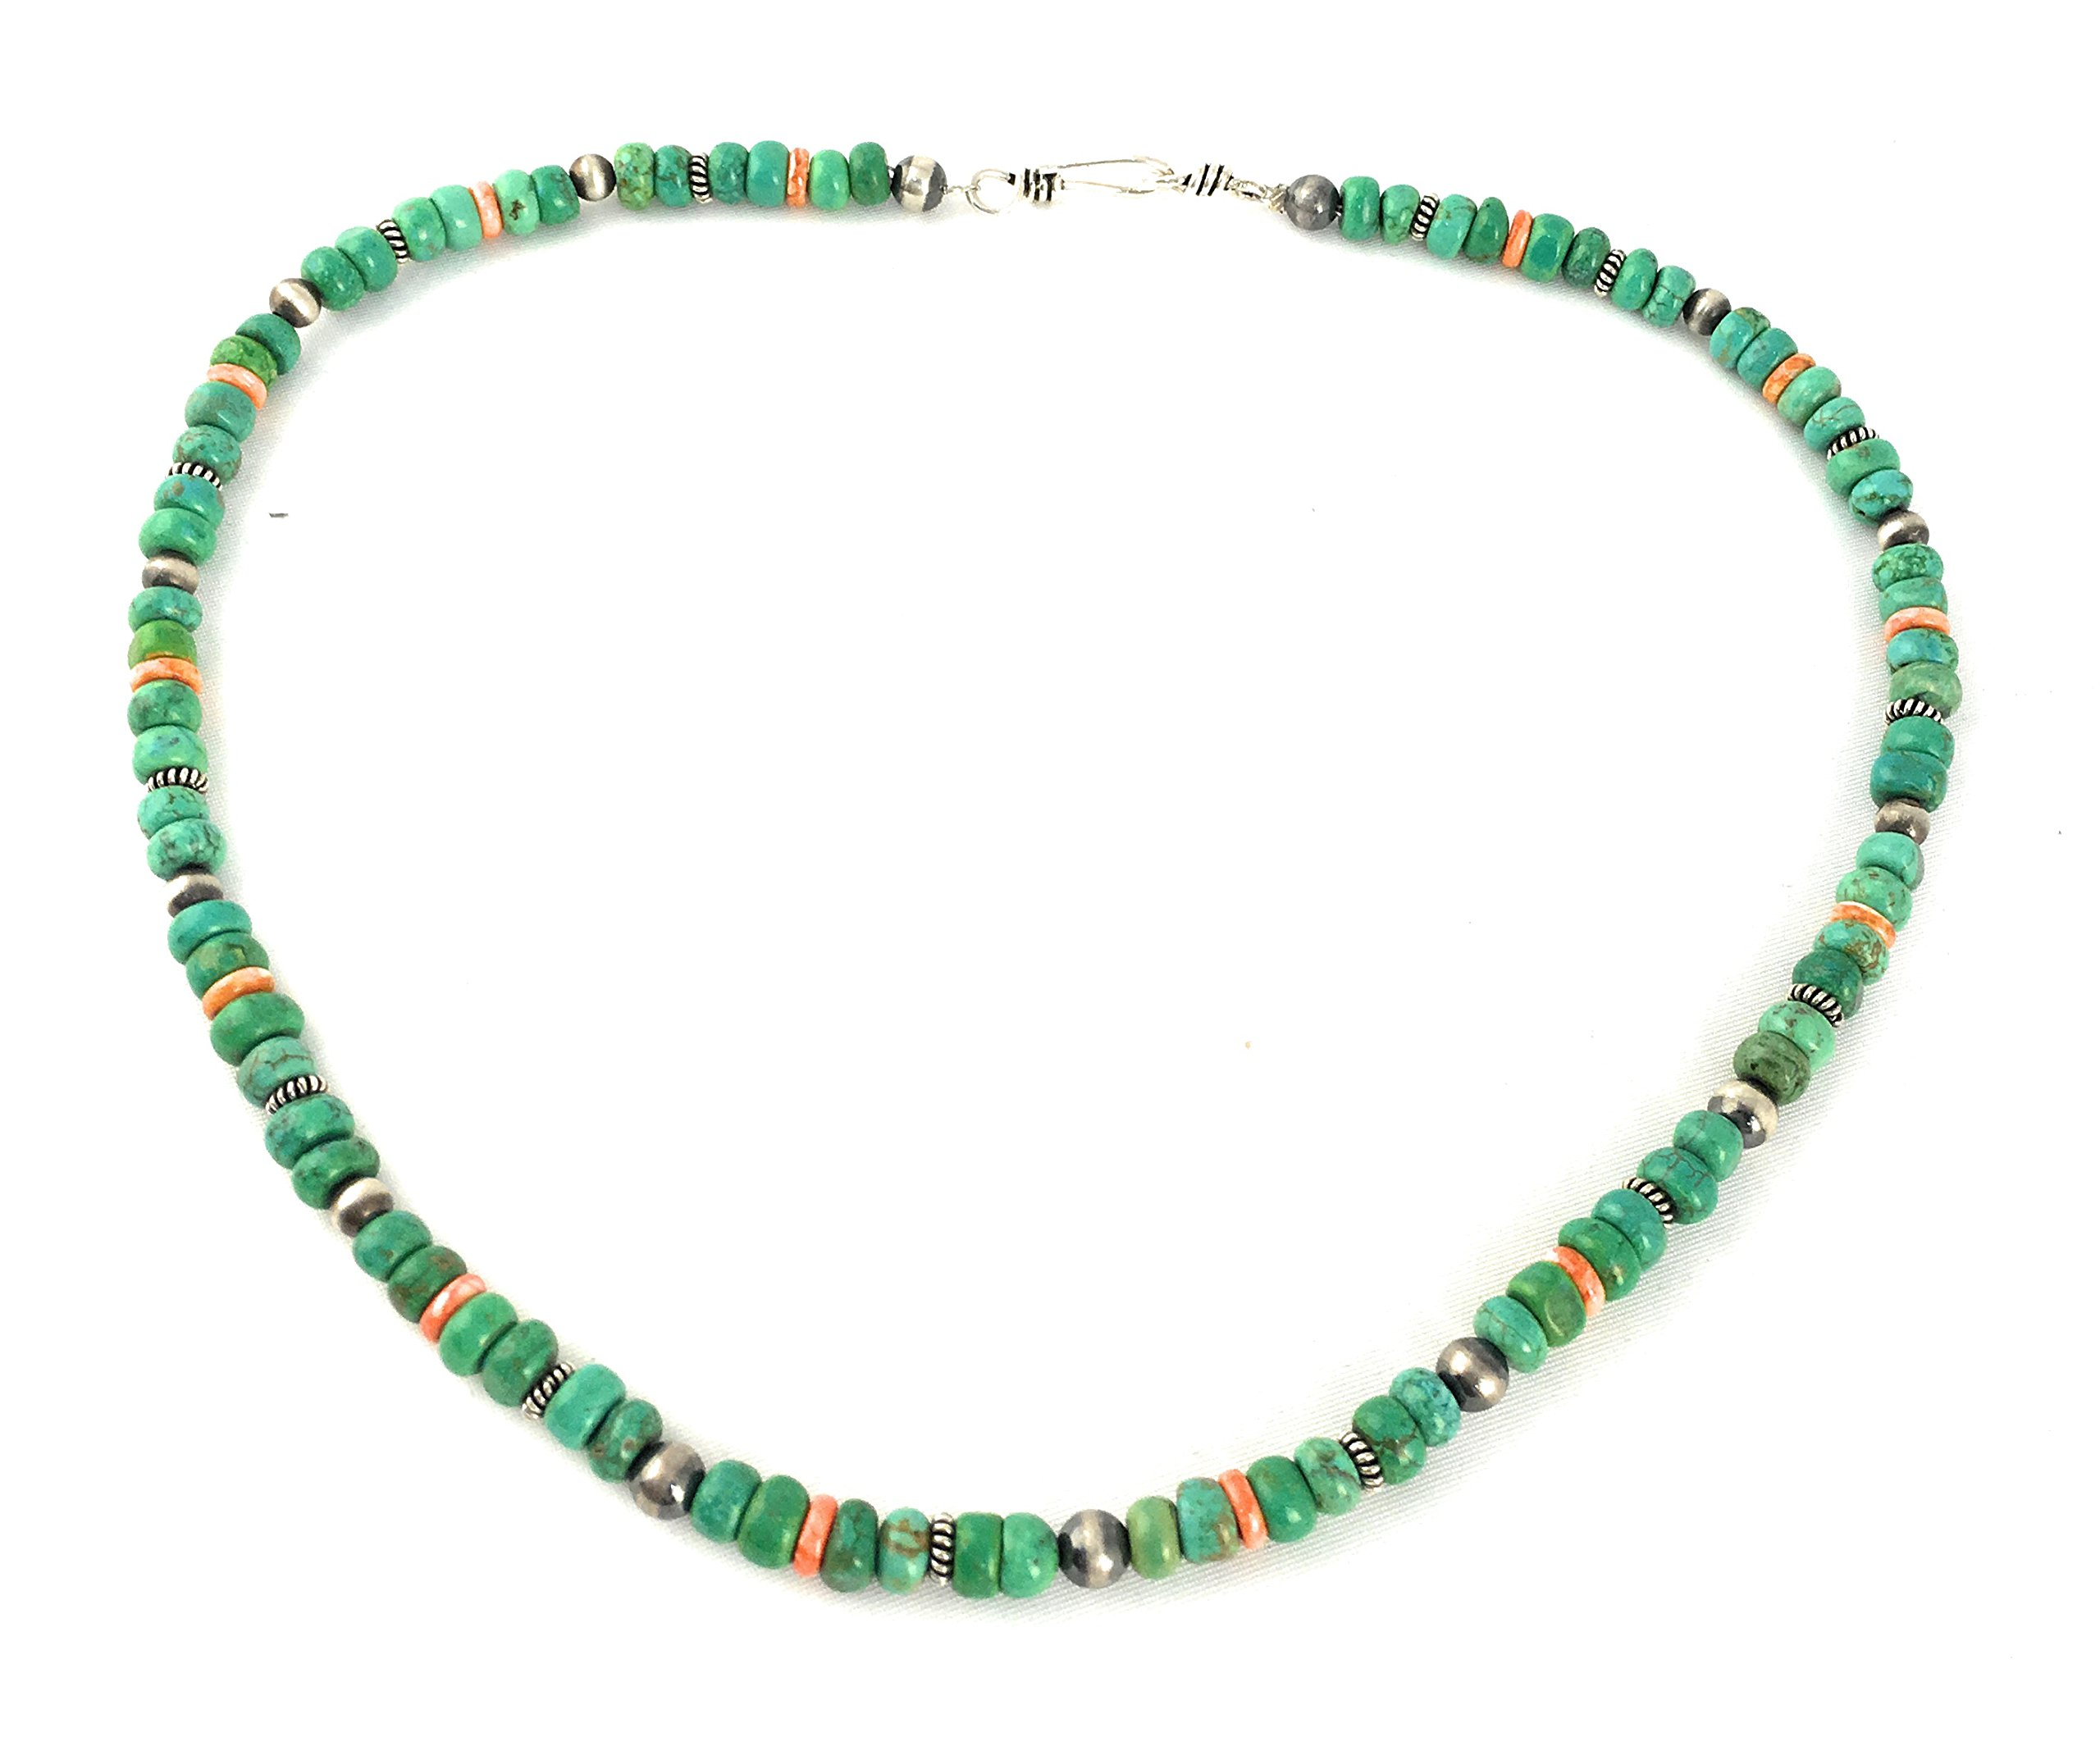 Masha Storewide Sale ! Sterling Silver Necklace By Spiny Oyster, Green Turquoise, Made in USA - Exclusive Southwestern Handmade Jewelry, 18'' in Length Gift